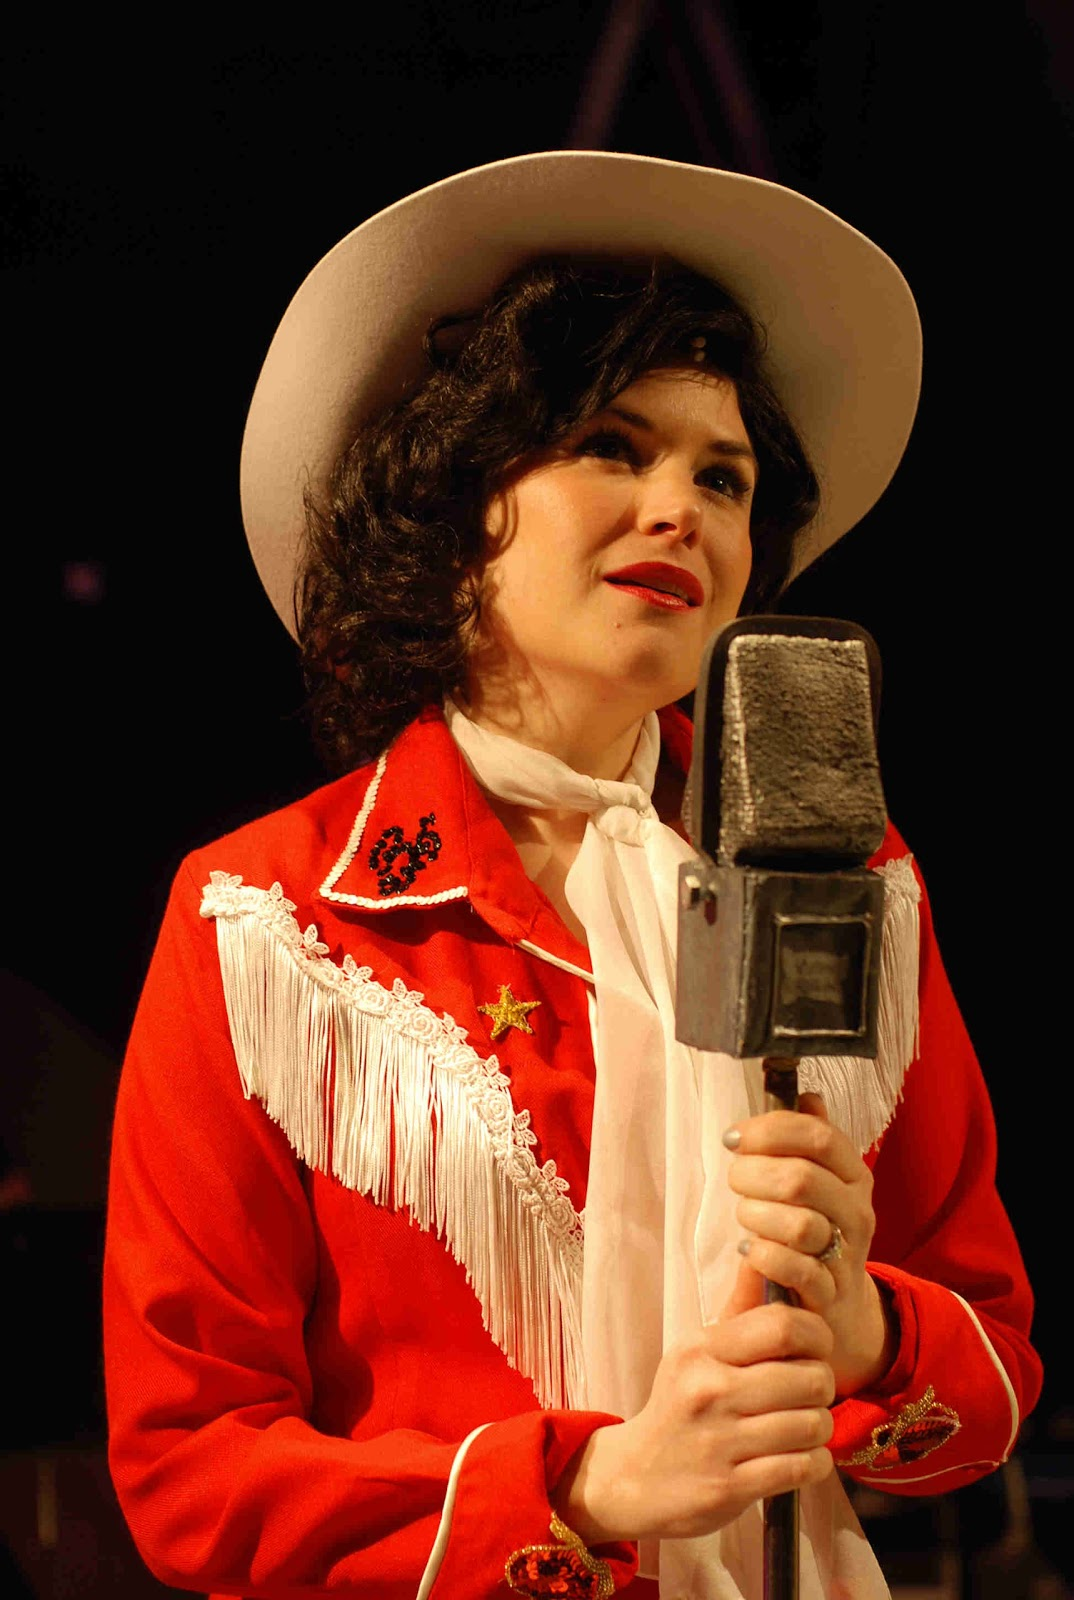 Bonnie39s Blog The Balcony And Beyond PATSY CLINE ALWAYS